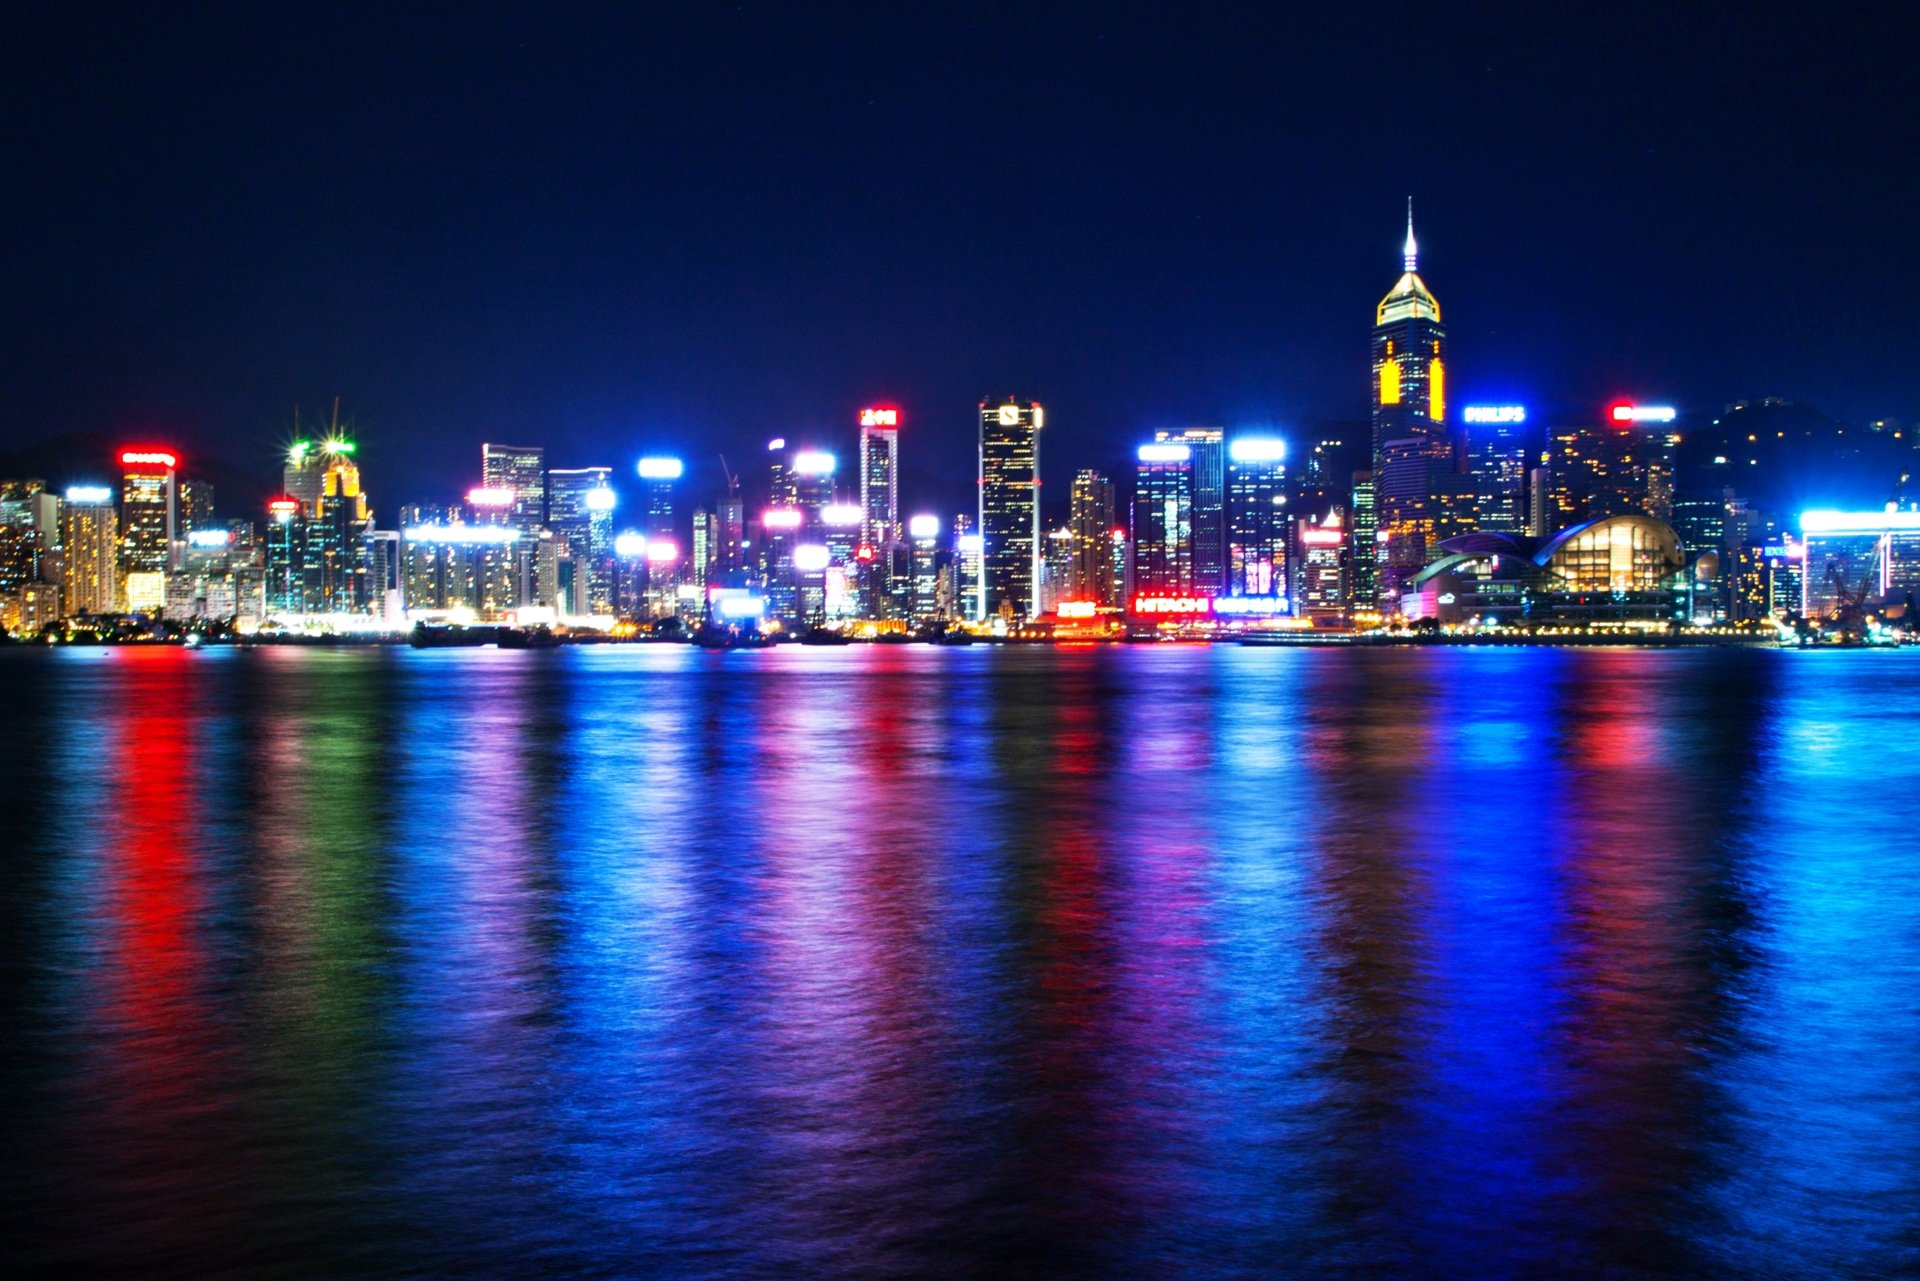 Man Made - Hong Kong  Building Night Skyscraper Ocean Sea Colors Light City Reflection Wallpaper